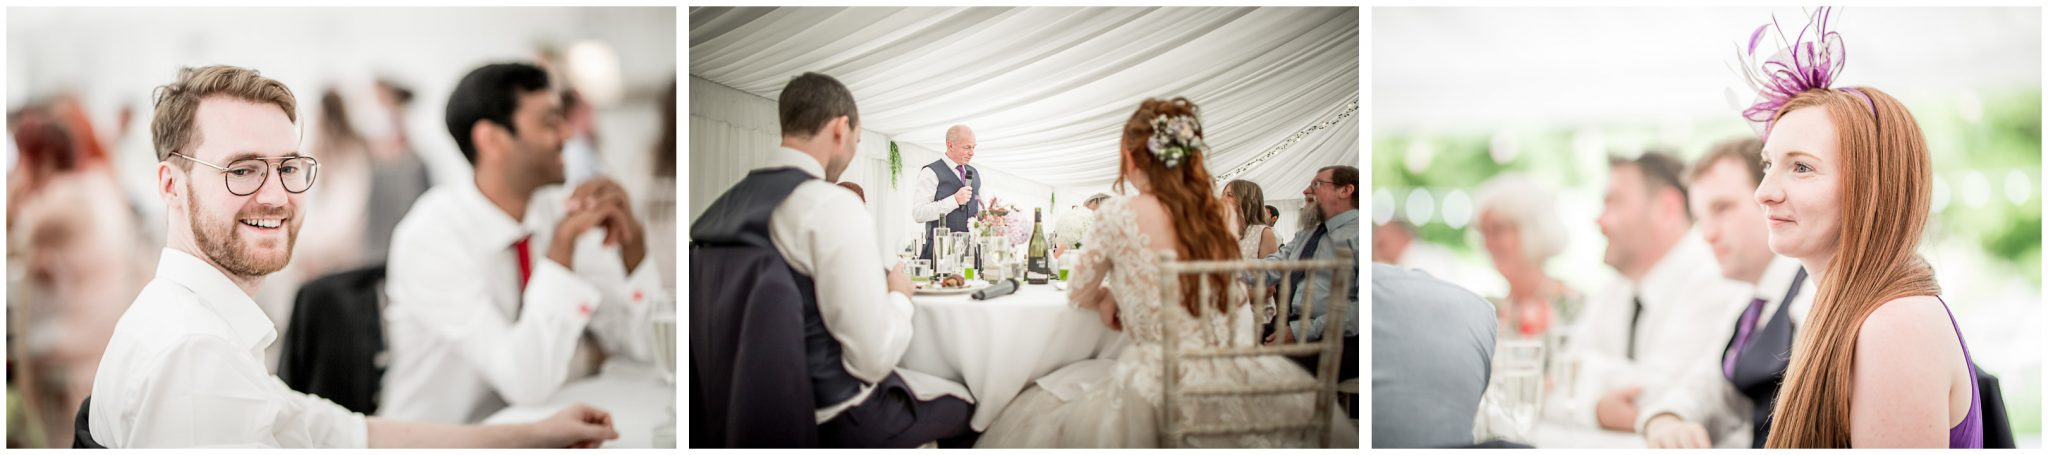 Father of the bride makes his speech